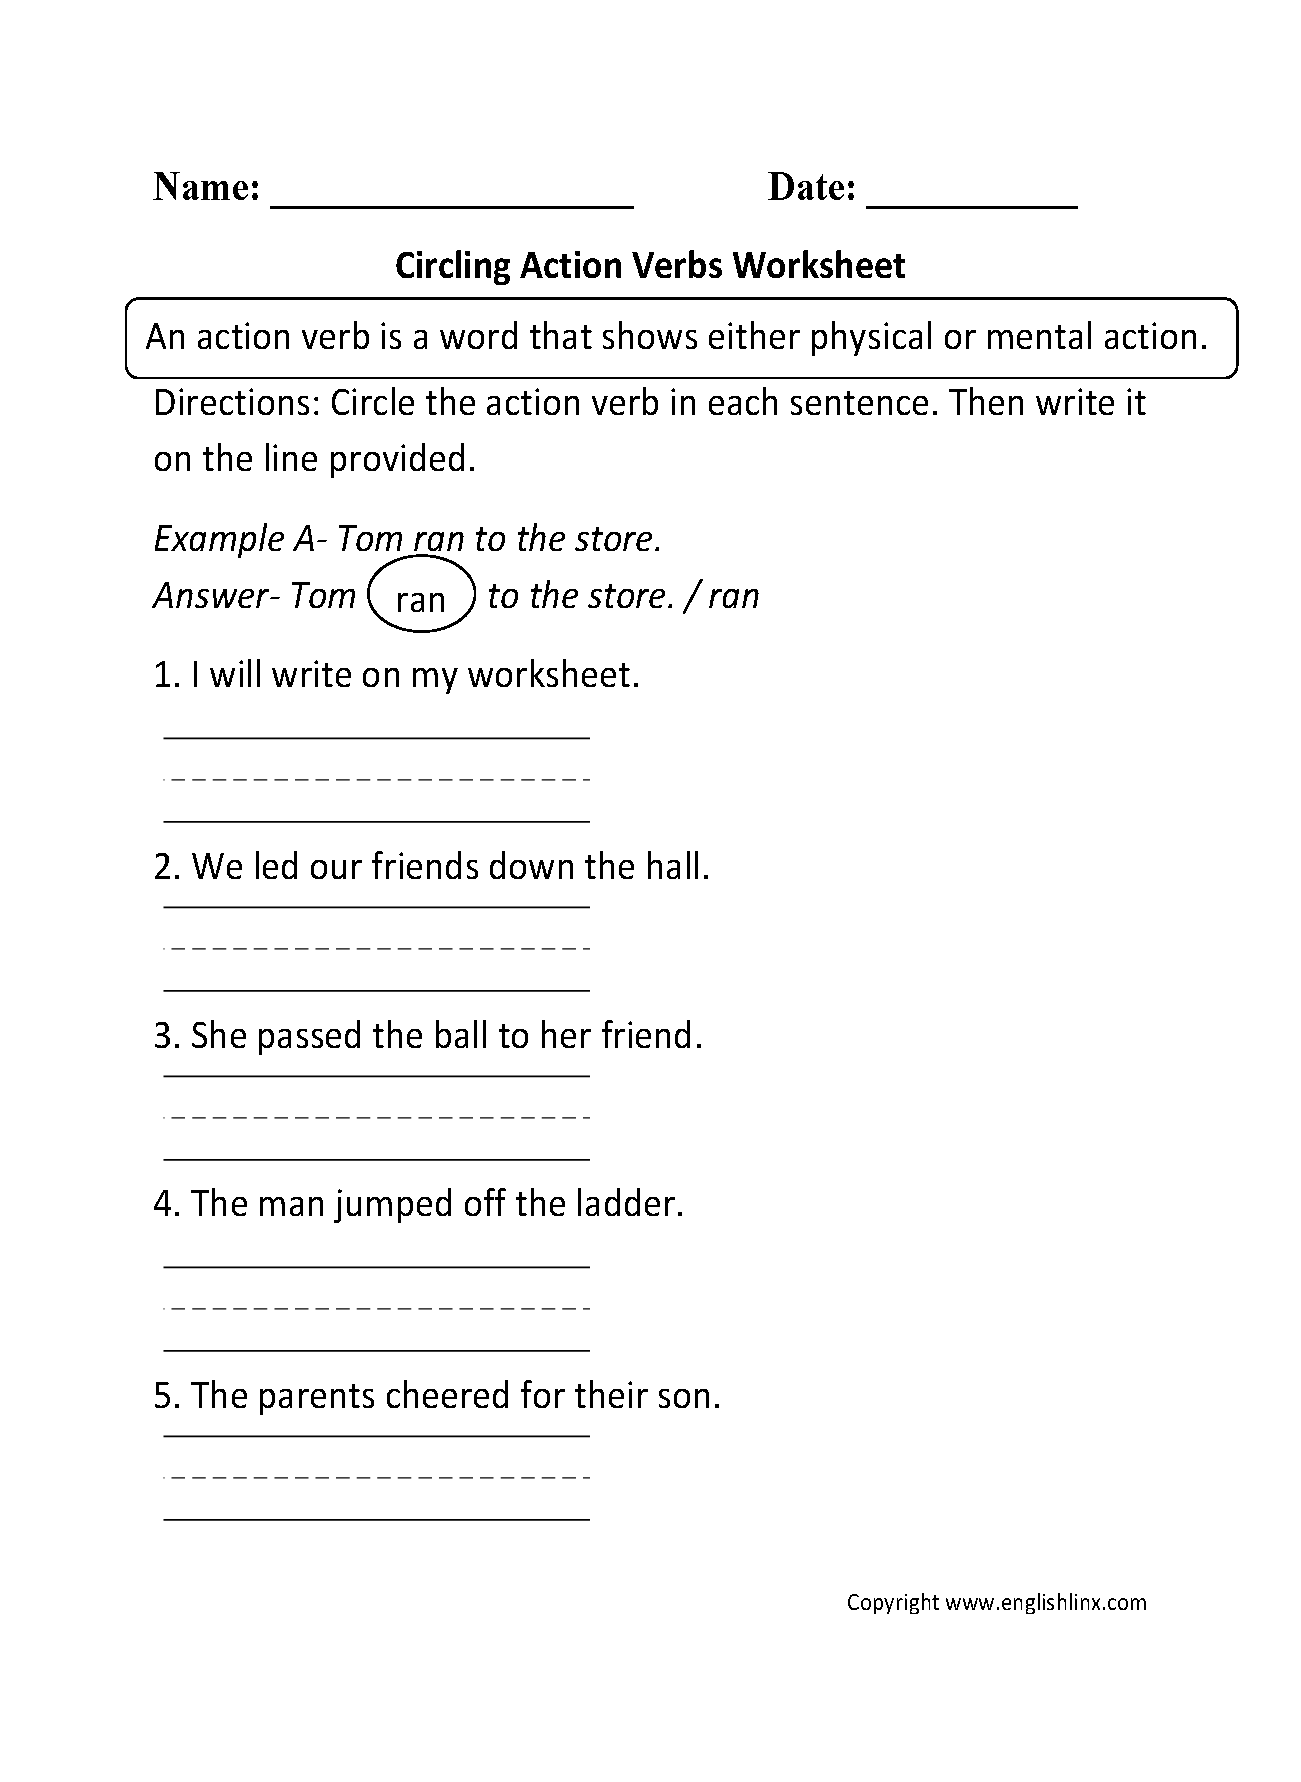 Worksheets Verb Worksheets 5th Grade verbs worksheets action worksheet